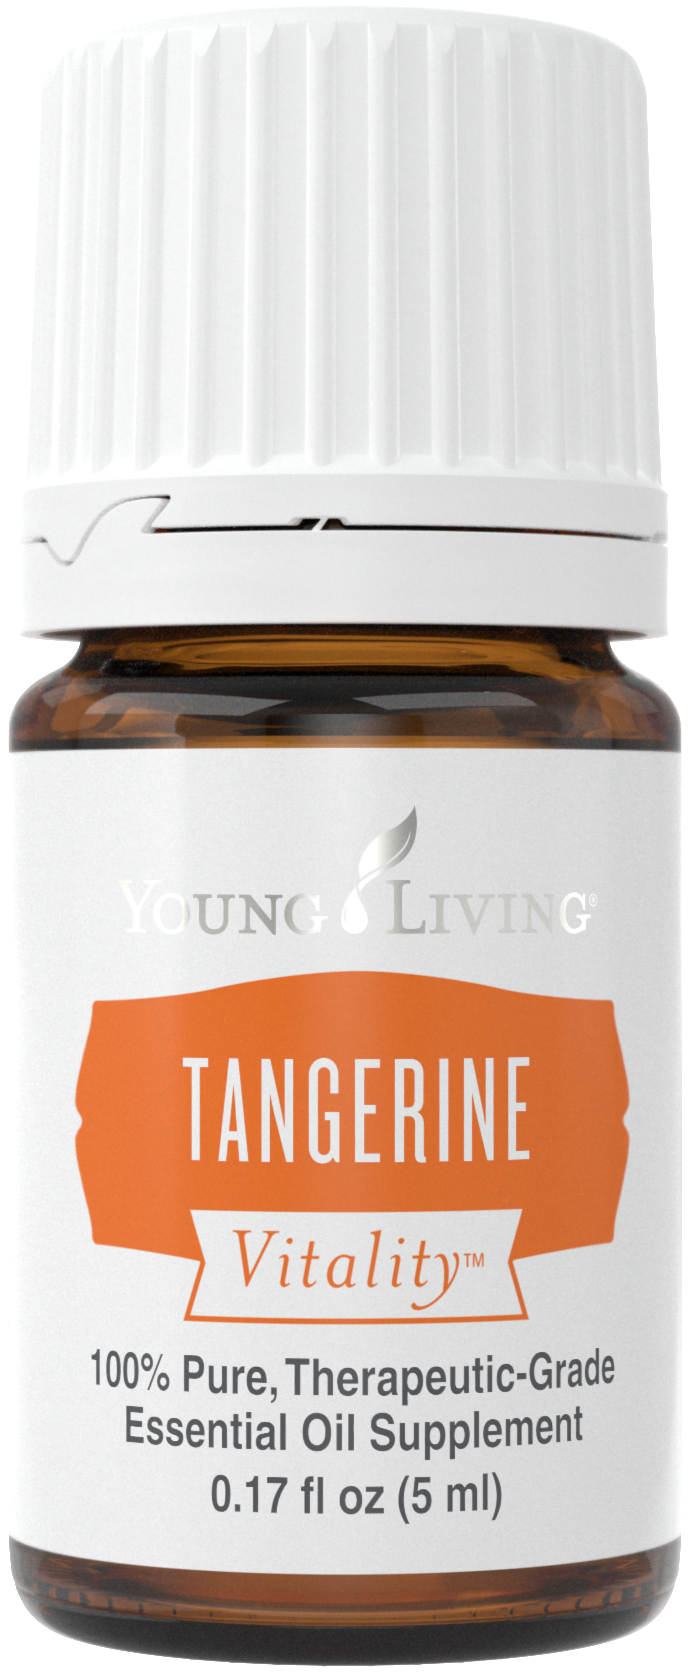 tangerine_5ml_suplement_silo_2016_23775651483_o